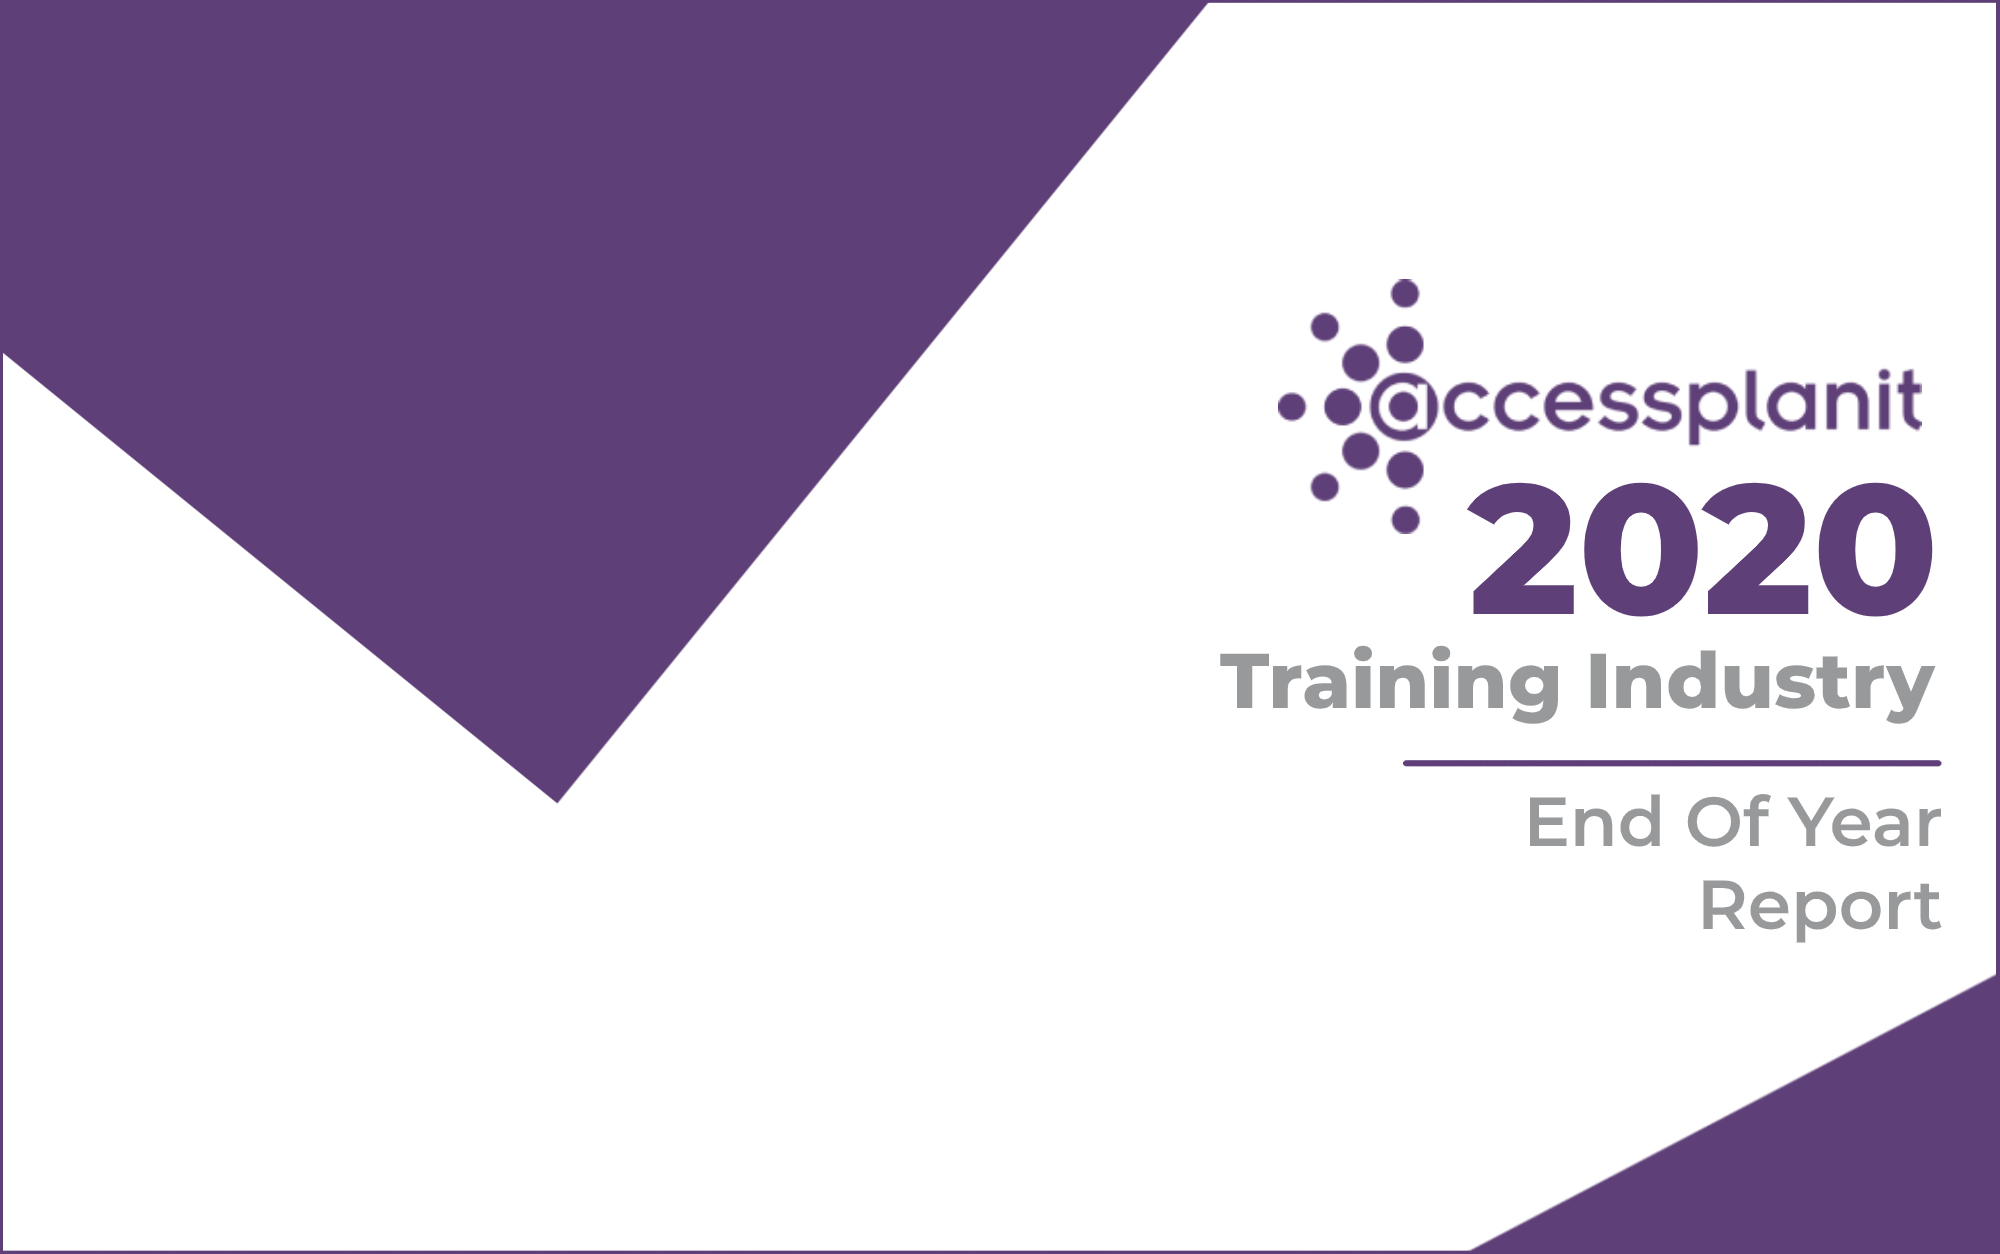 The 2020 Training Industry End Of Year Report